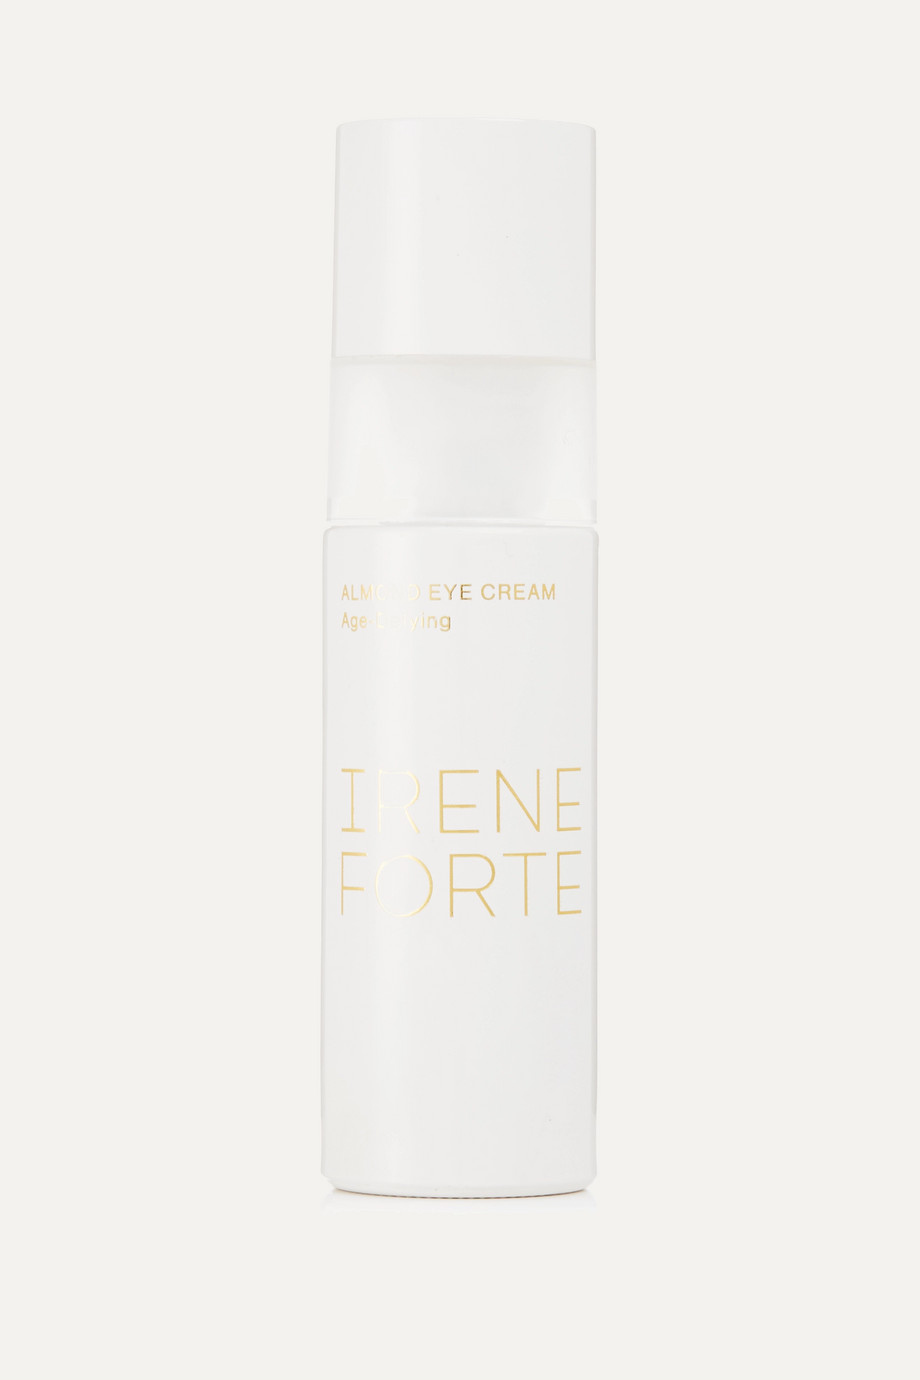 Irene Forte + NET SUSTAIN Age-Defying Almond Eye Cream, 30ml